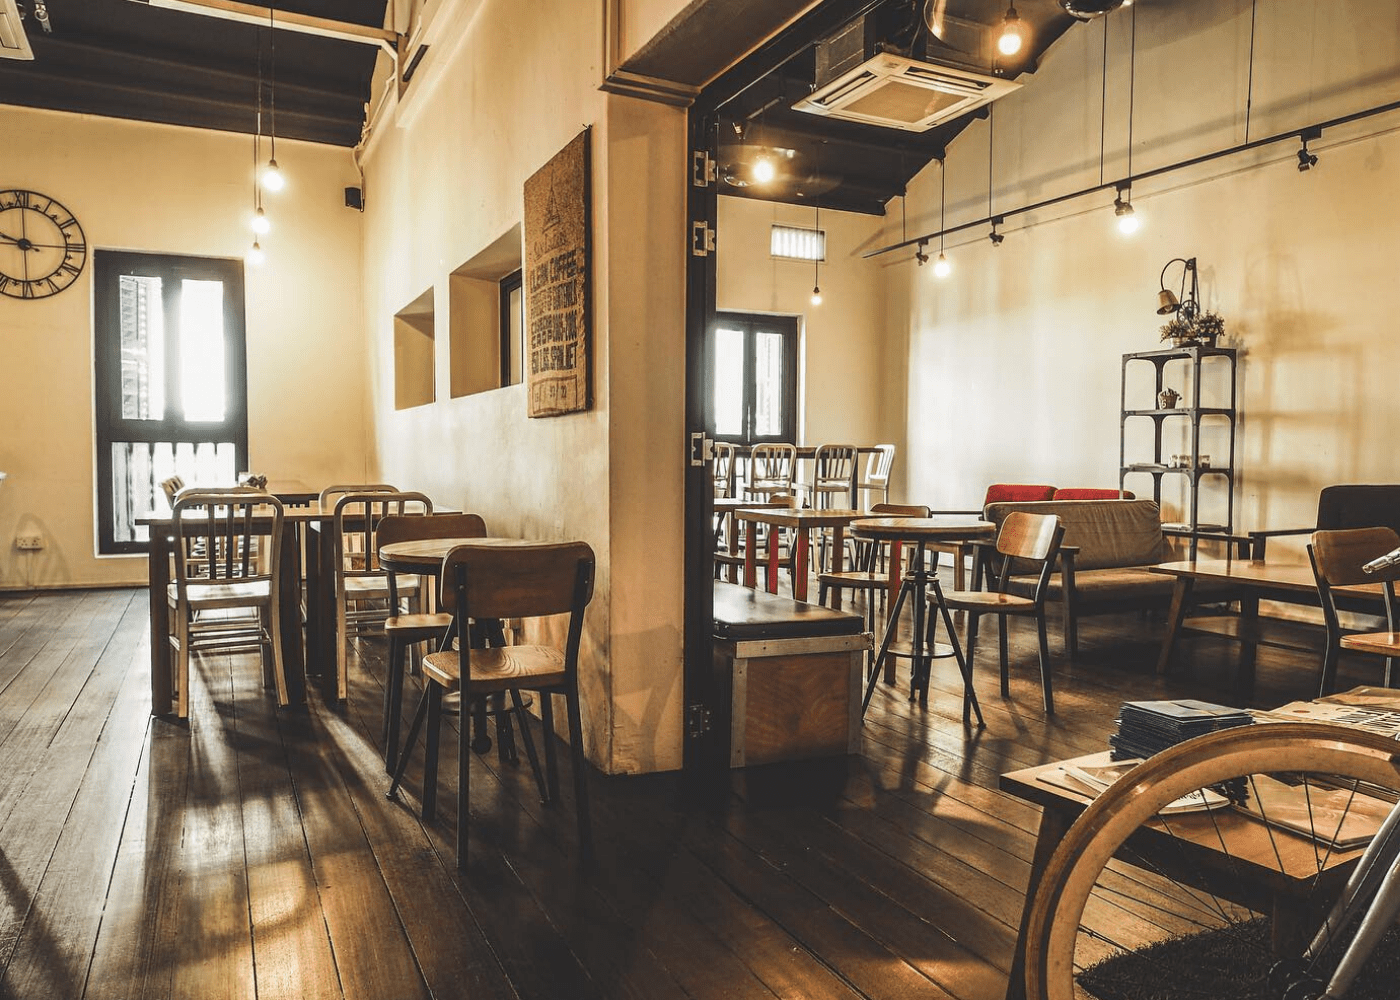 group therapy | Cafes in Singapore with free wifi